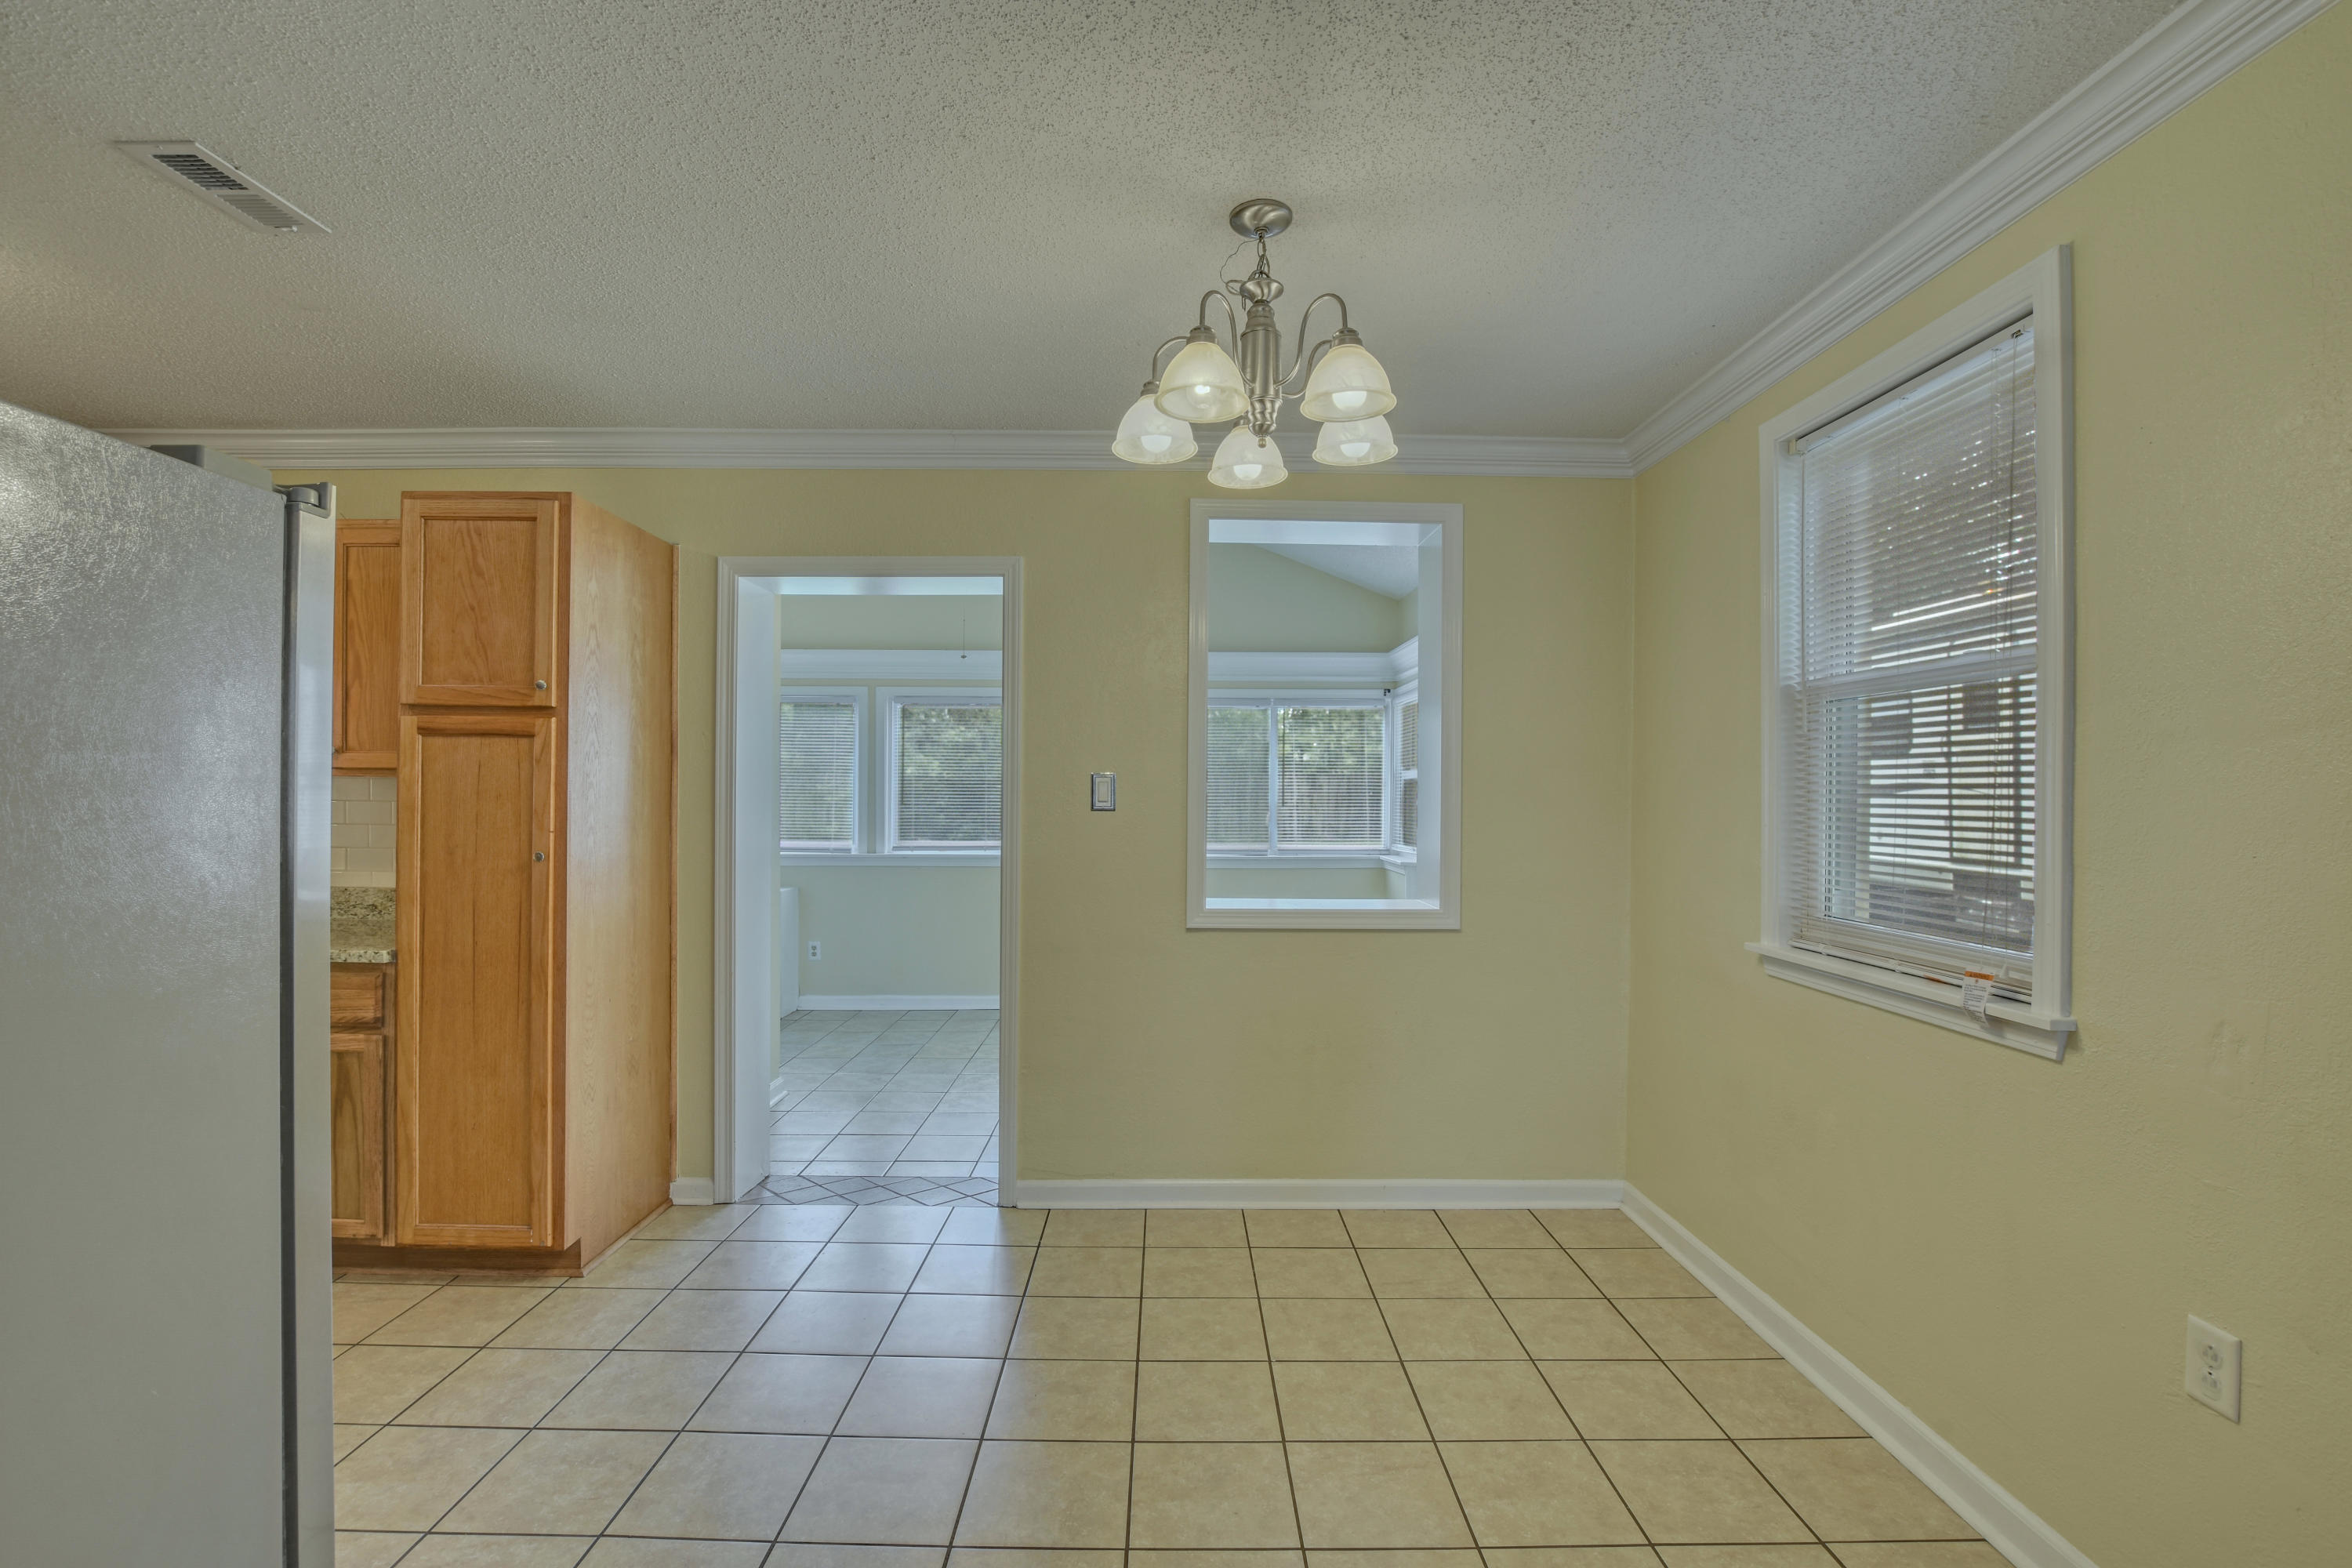 Pineview Terrace Homes For Sale - 232 Holly, Goose Creek, SC - 0